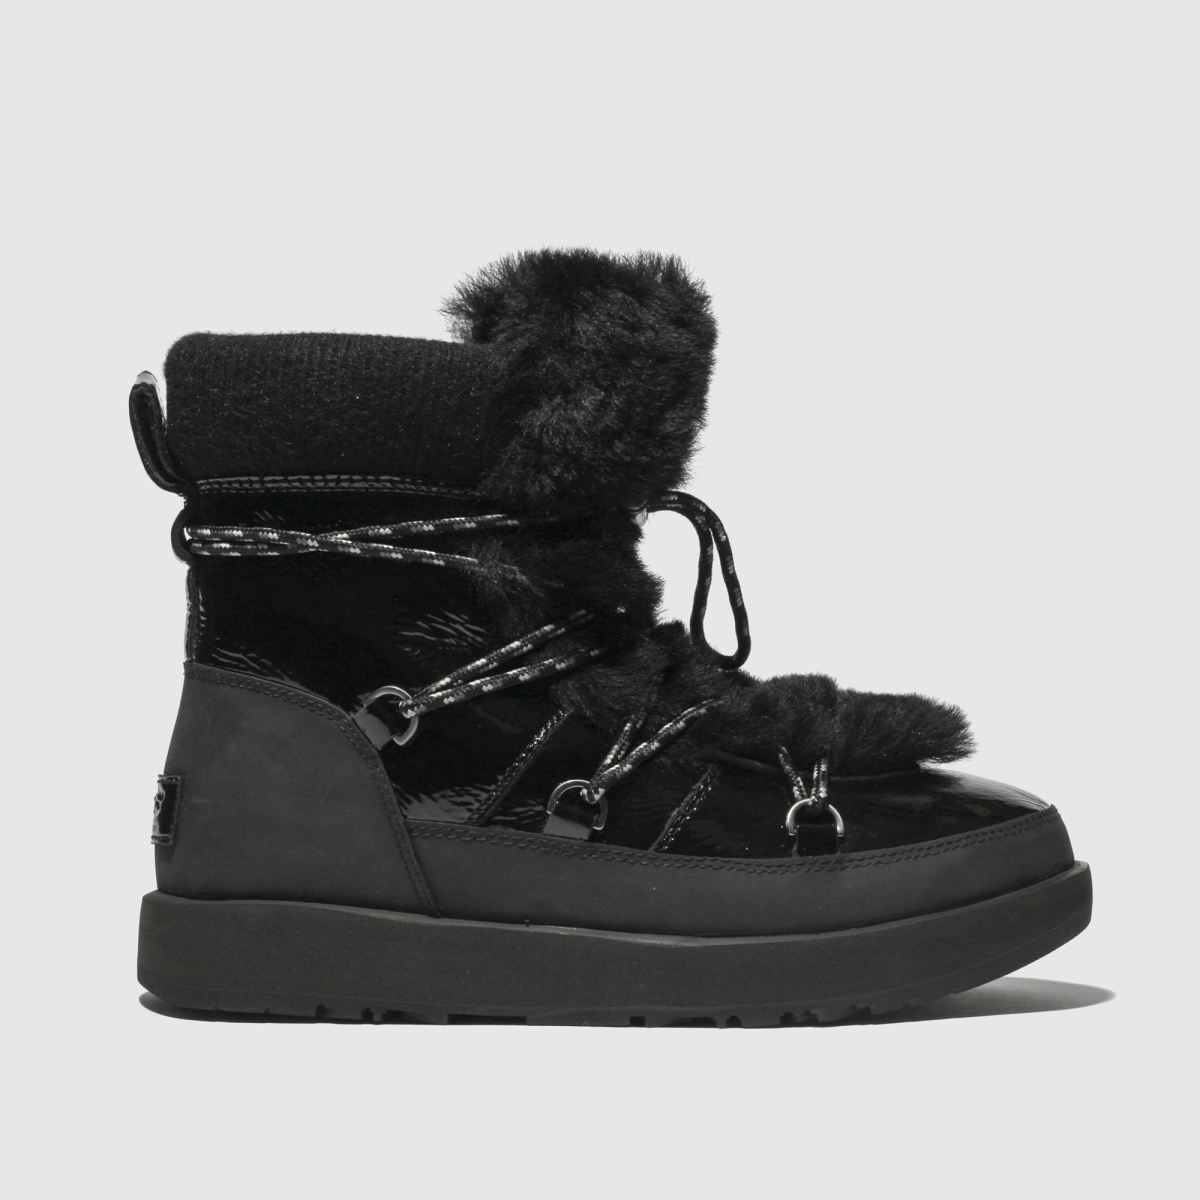 Ugg Black Highland Waterproof Boots